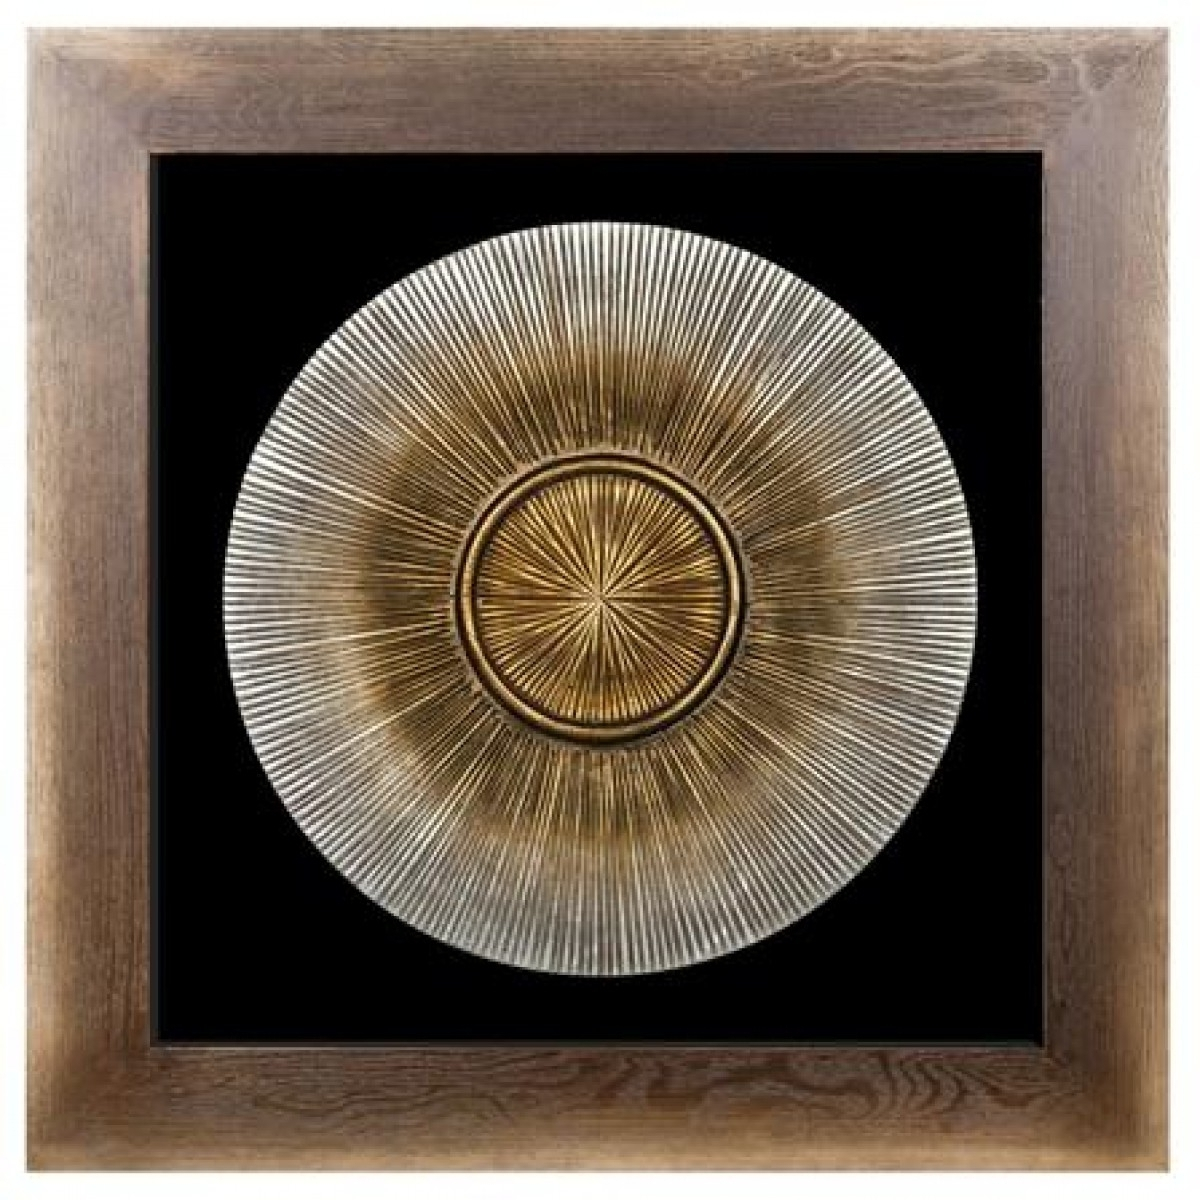 Most Recent Round Wood Wall Art Designs Wood Wall Artwork Together With Round Inside Round Wood Wall Art (View 4 of 15)